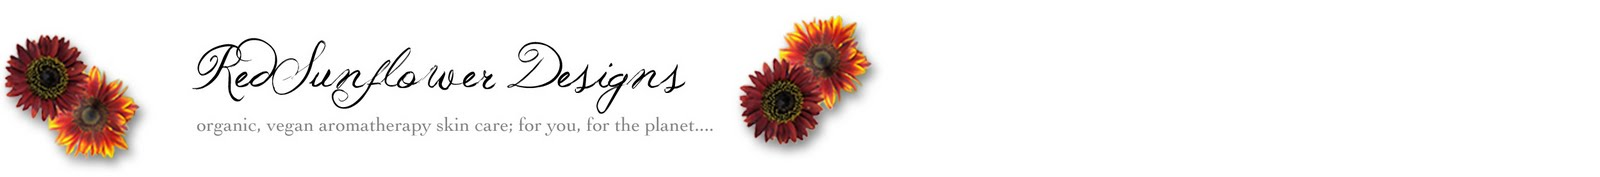 RedSunflower Designs